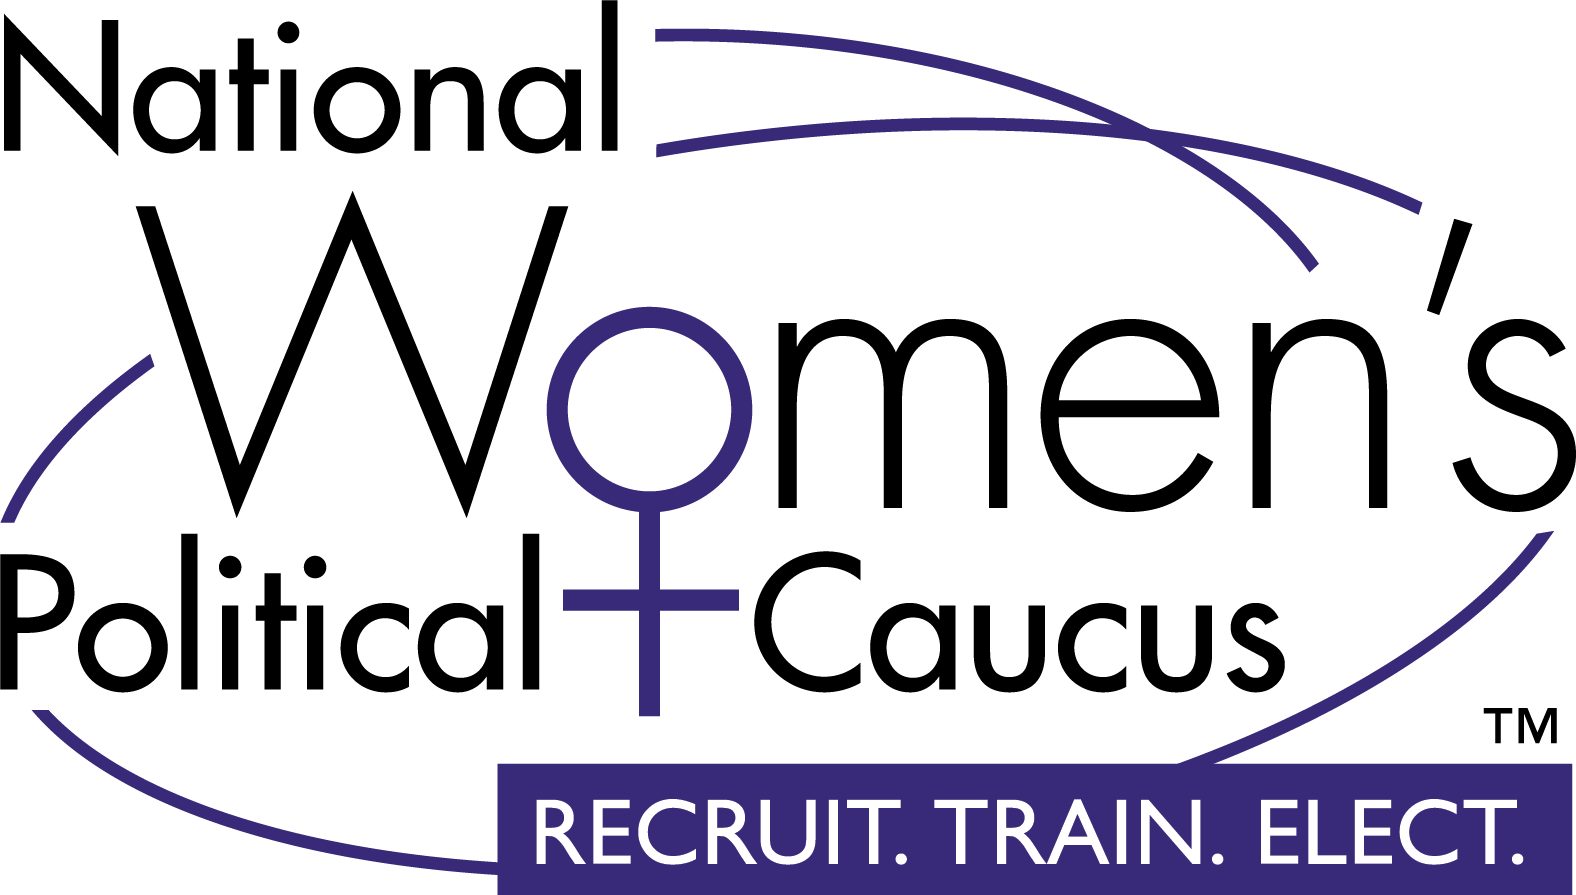 Recruiting, training and electing women since 1971.